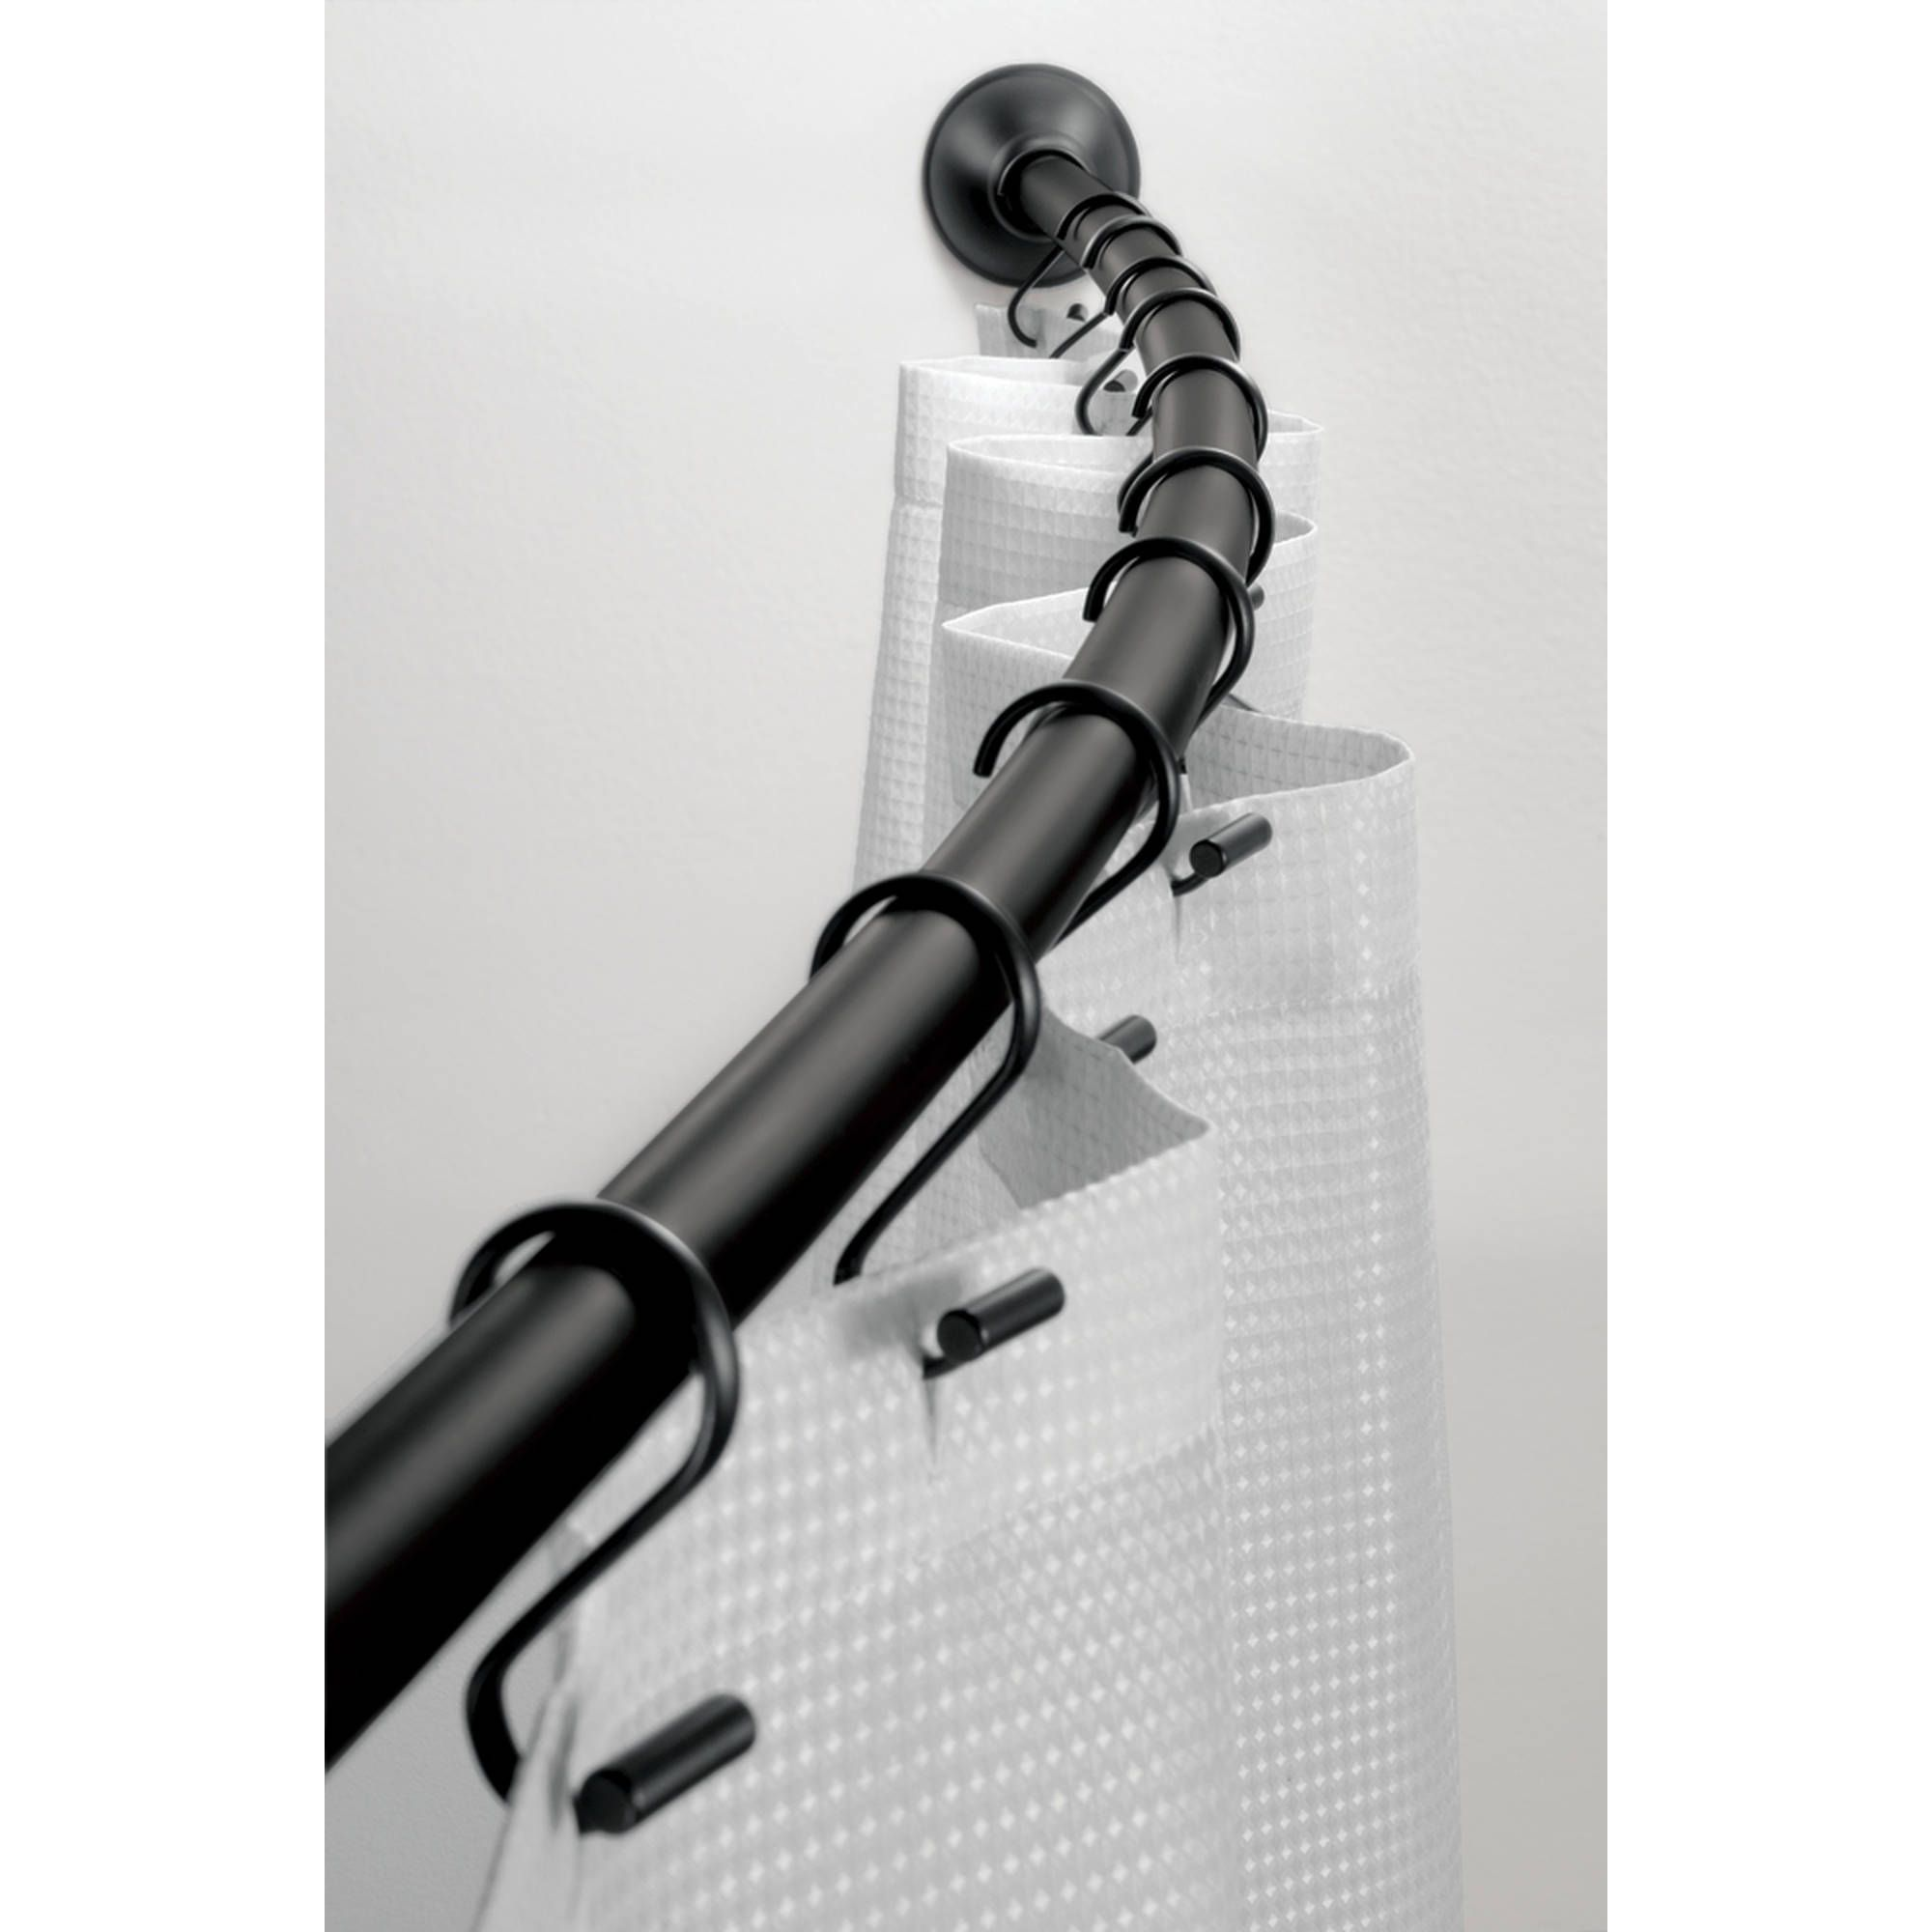 Home In 2020 Black Shower Curtains Shower Curtain Rods Black